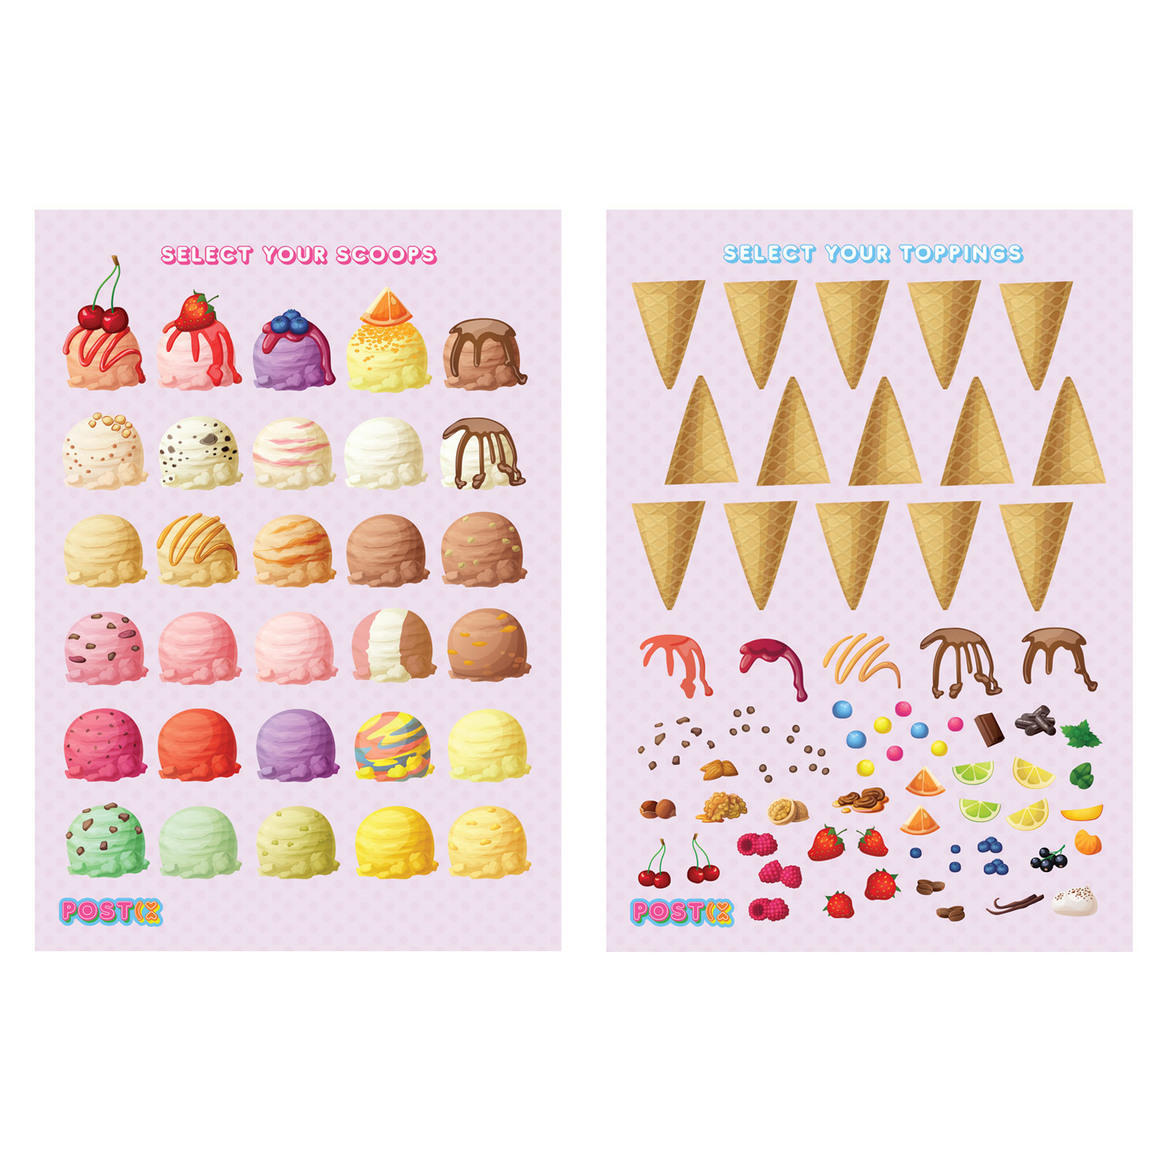 BUILD YOUR OWN ICE CREAMS TWIN PACK A5 ECO FRIENDLY STICKER SHEET TWIN PACK   Trada Marketplace